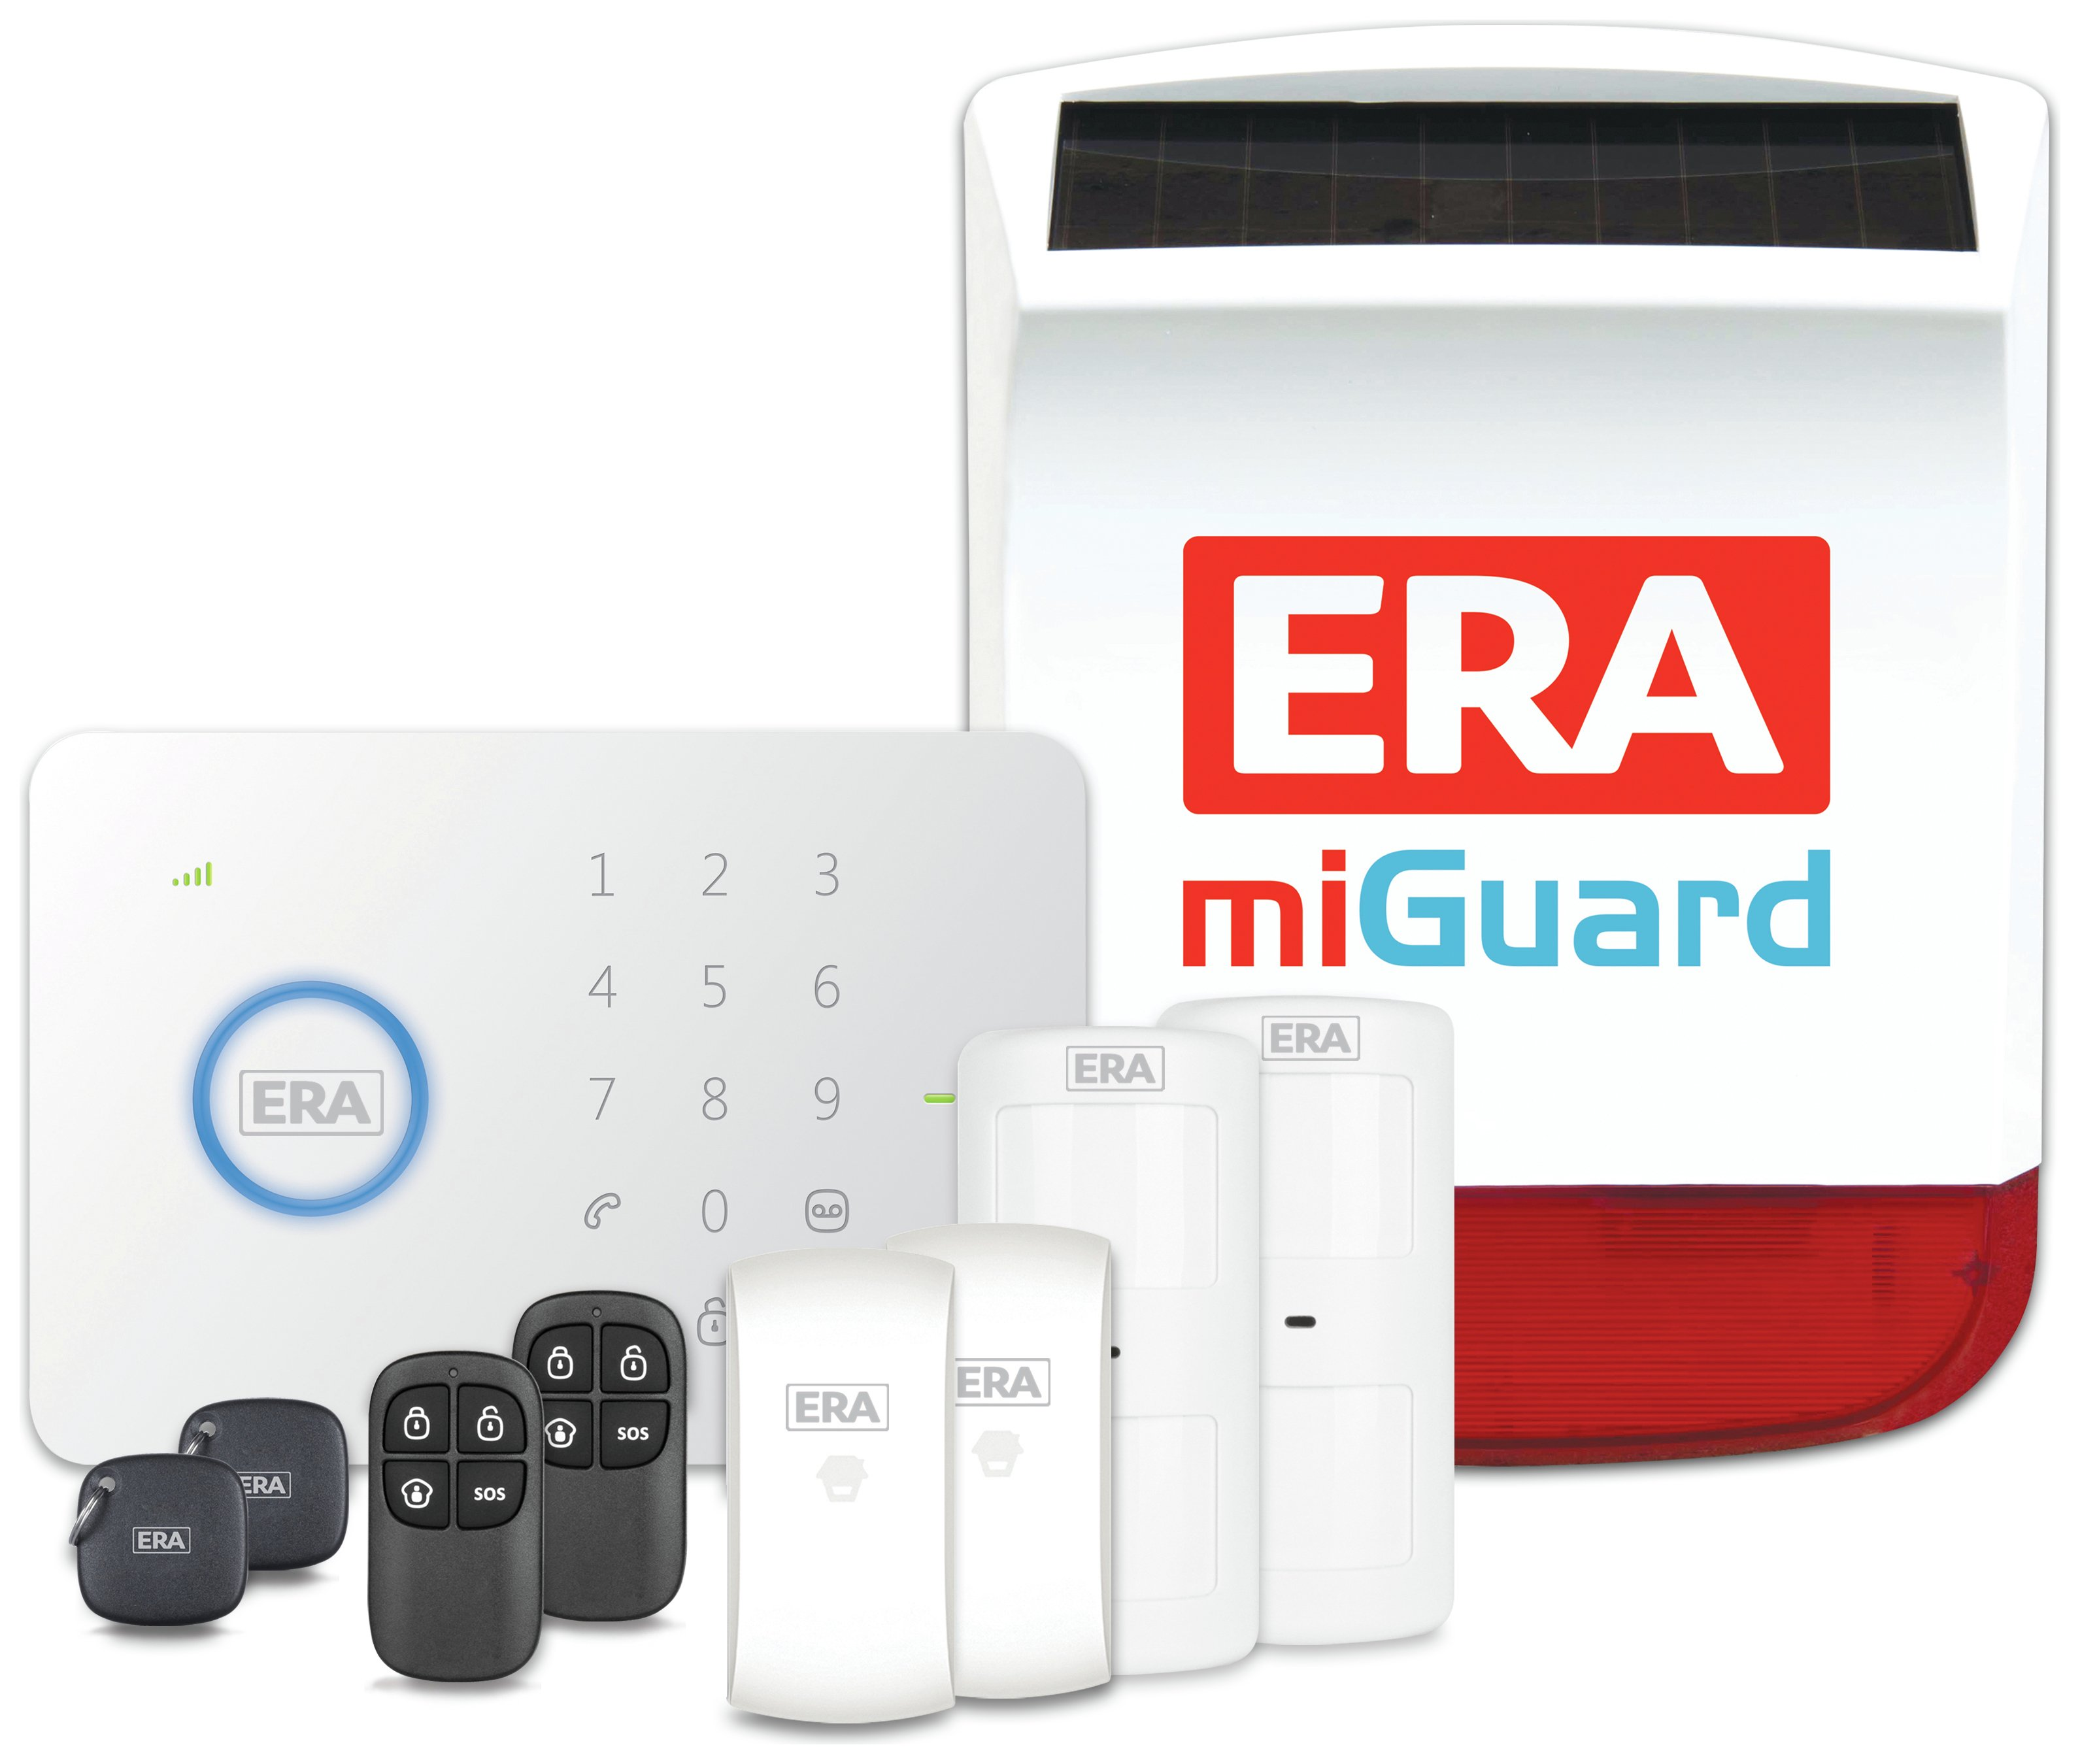 miGuard - G5 Wireless Alarm System with Live Siren